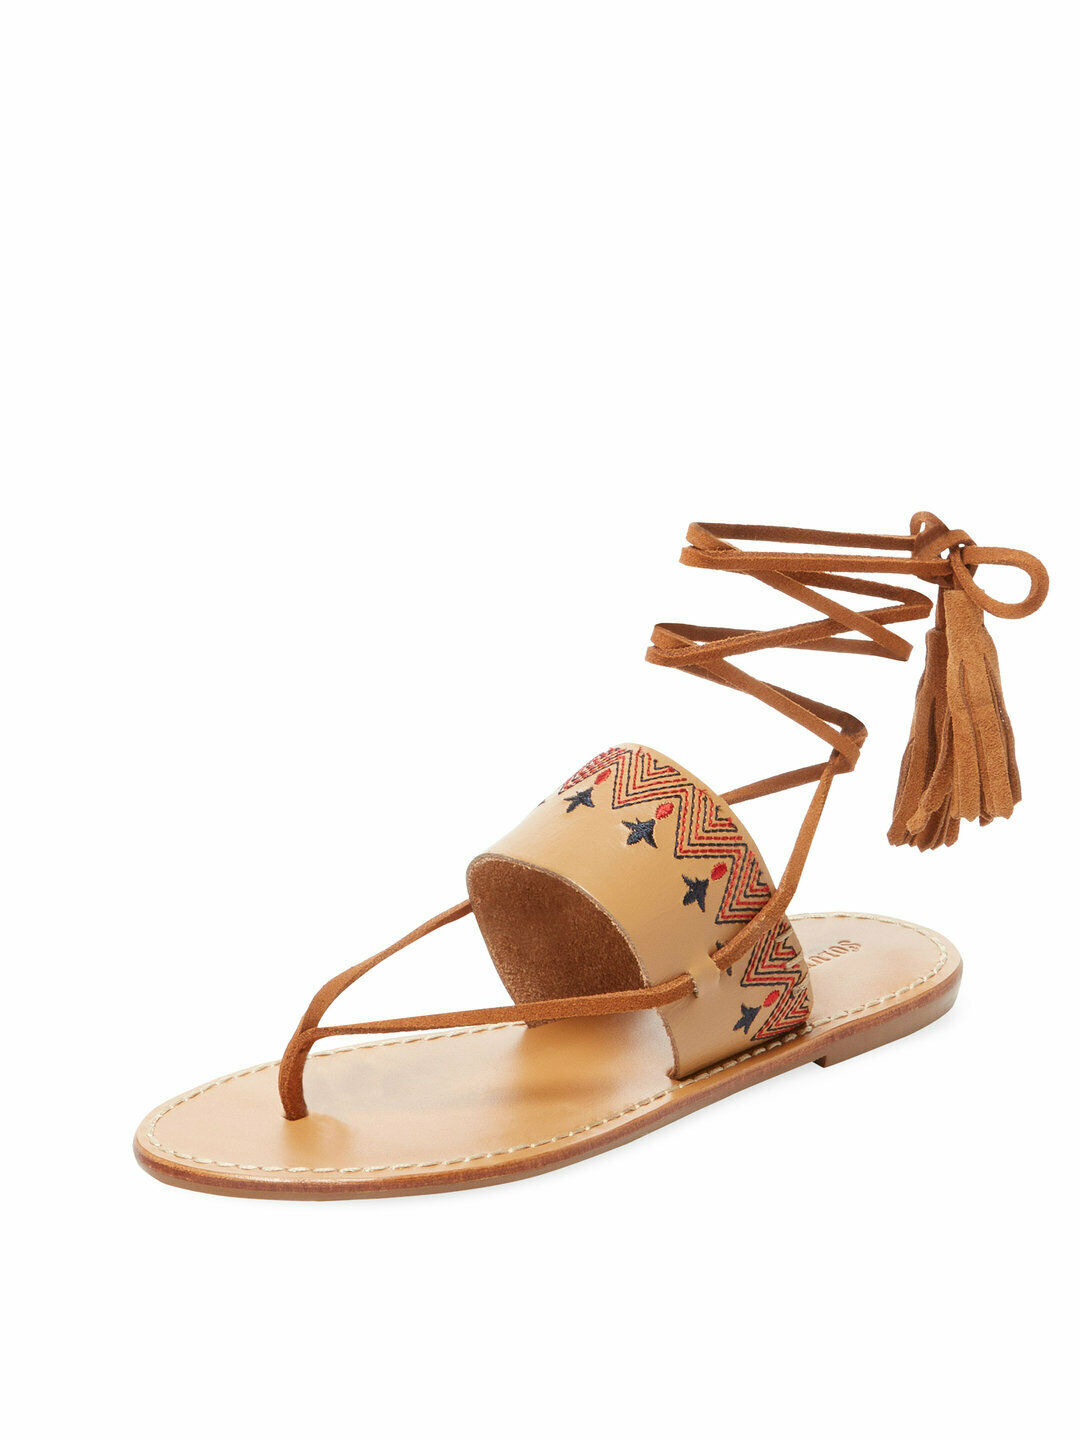 SOLUDOS Embroidered Tan Leather Lace Up Sandals Size 9  89 MSRP